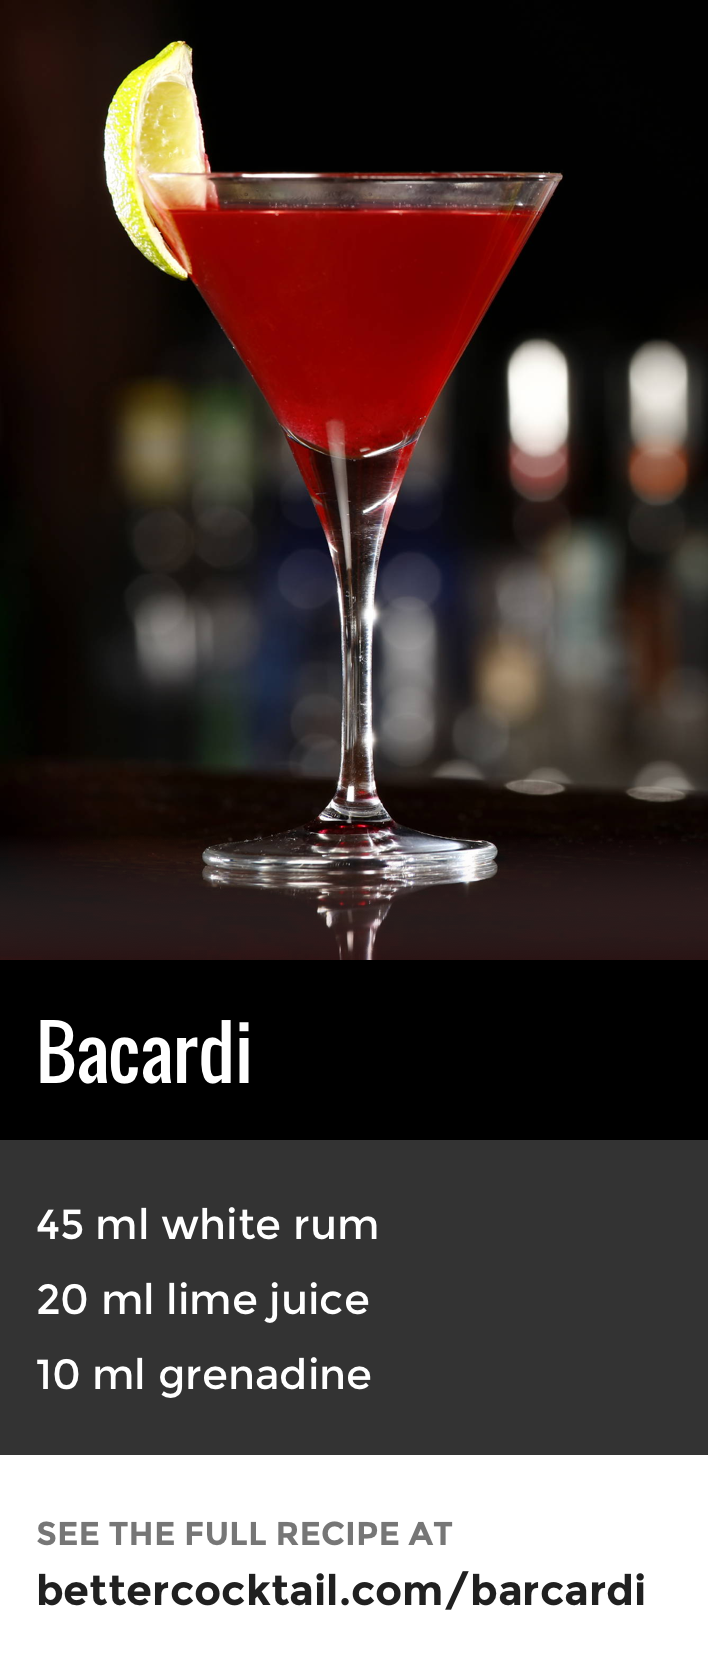 Cocktails with Bacardi - the taste of this holiday 100